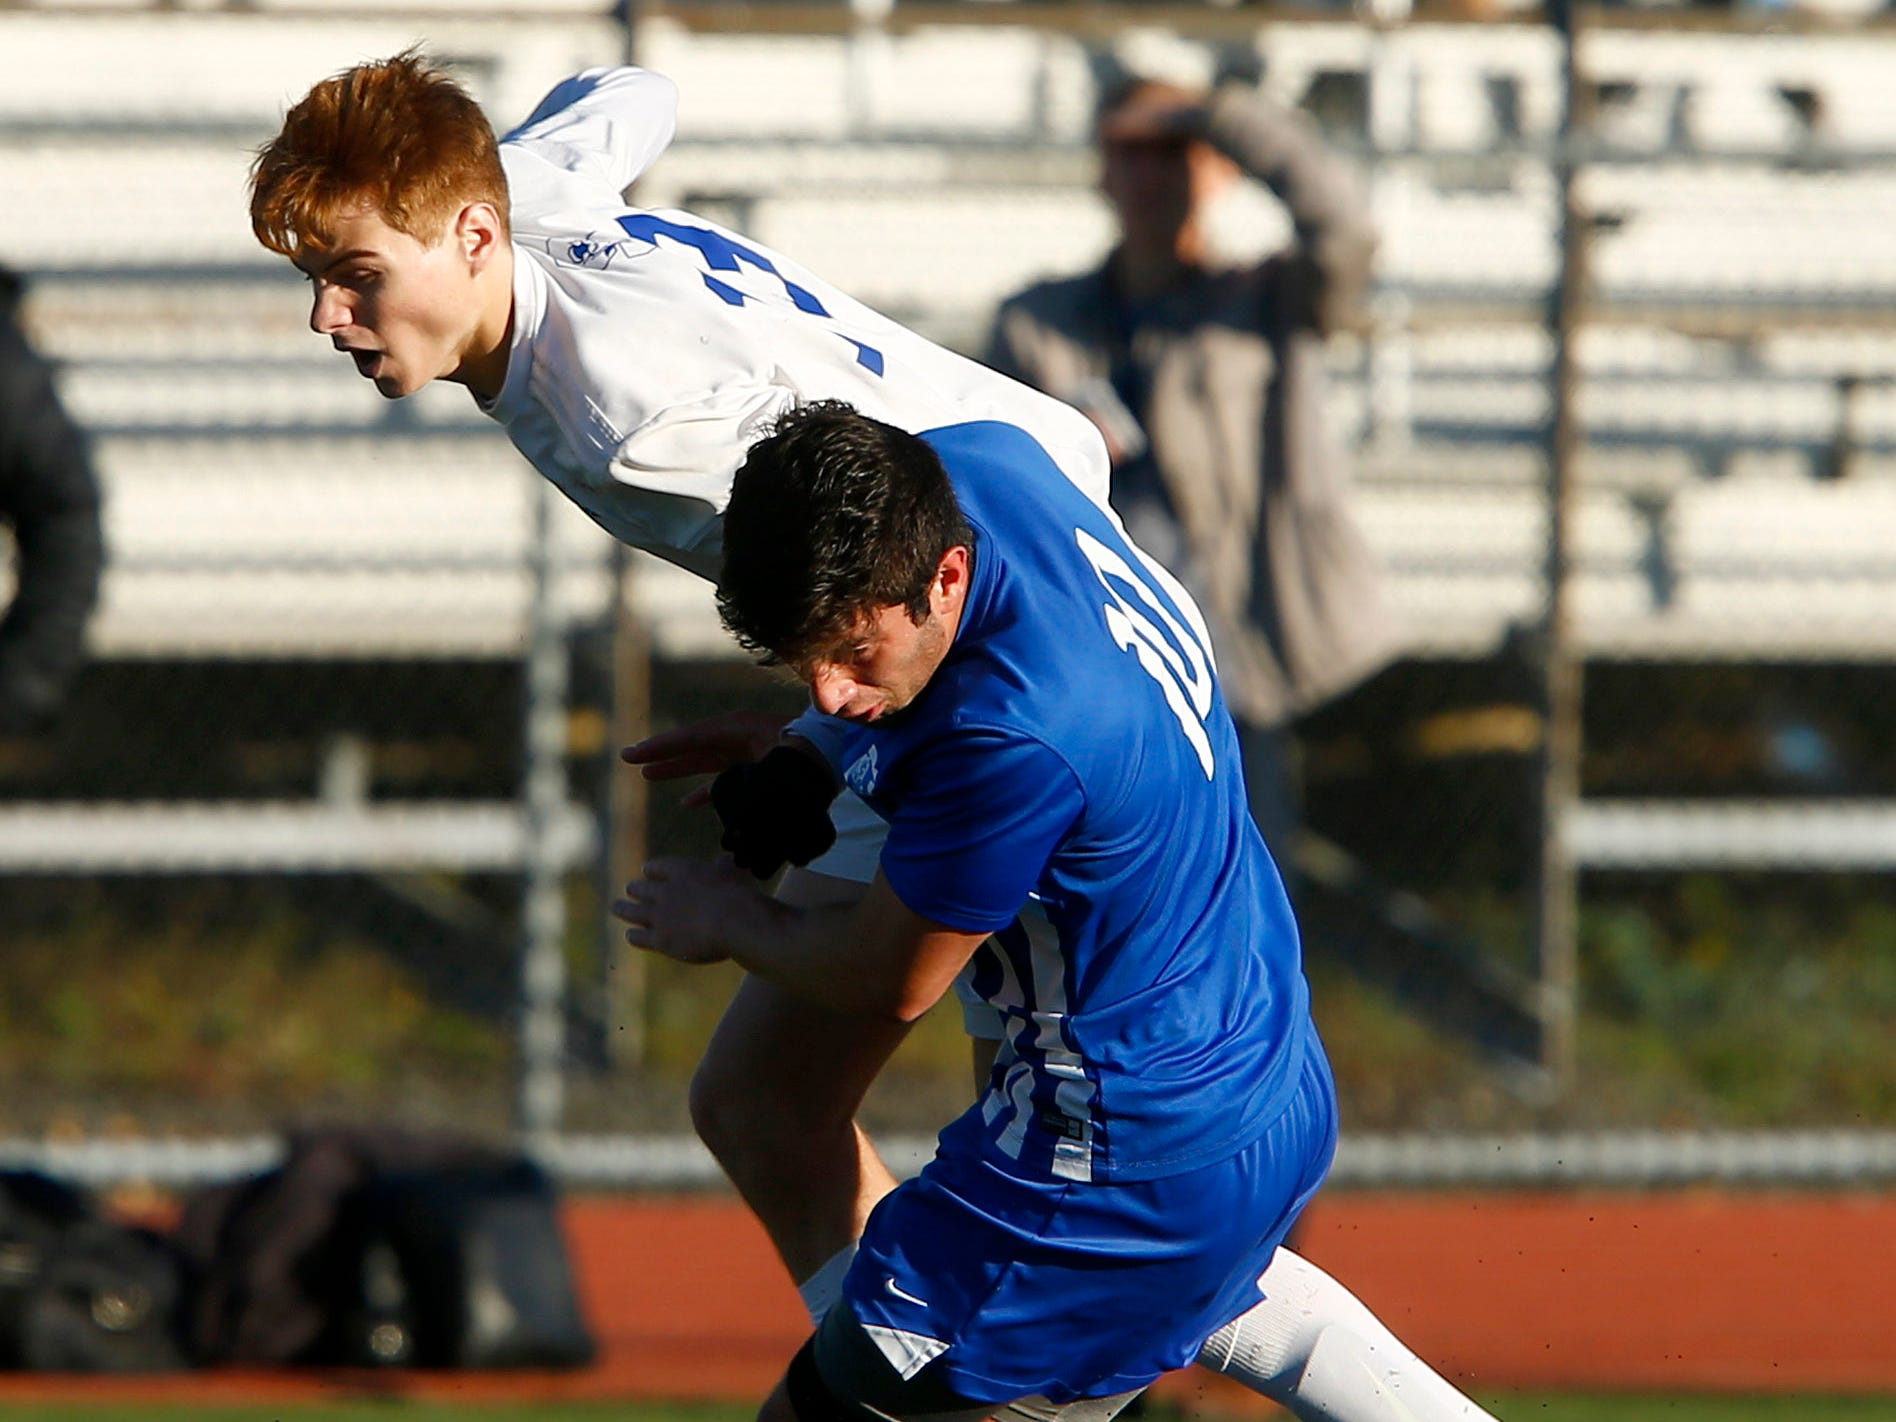 Holmdel's Anthony Arena (#10) battles with Shore Regional's Ryan Bongarzone for control of the ball during their Central Group II boys soccer final game played in Holmdel Thursday, November 8, 2018.